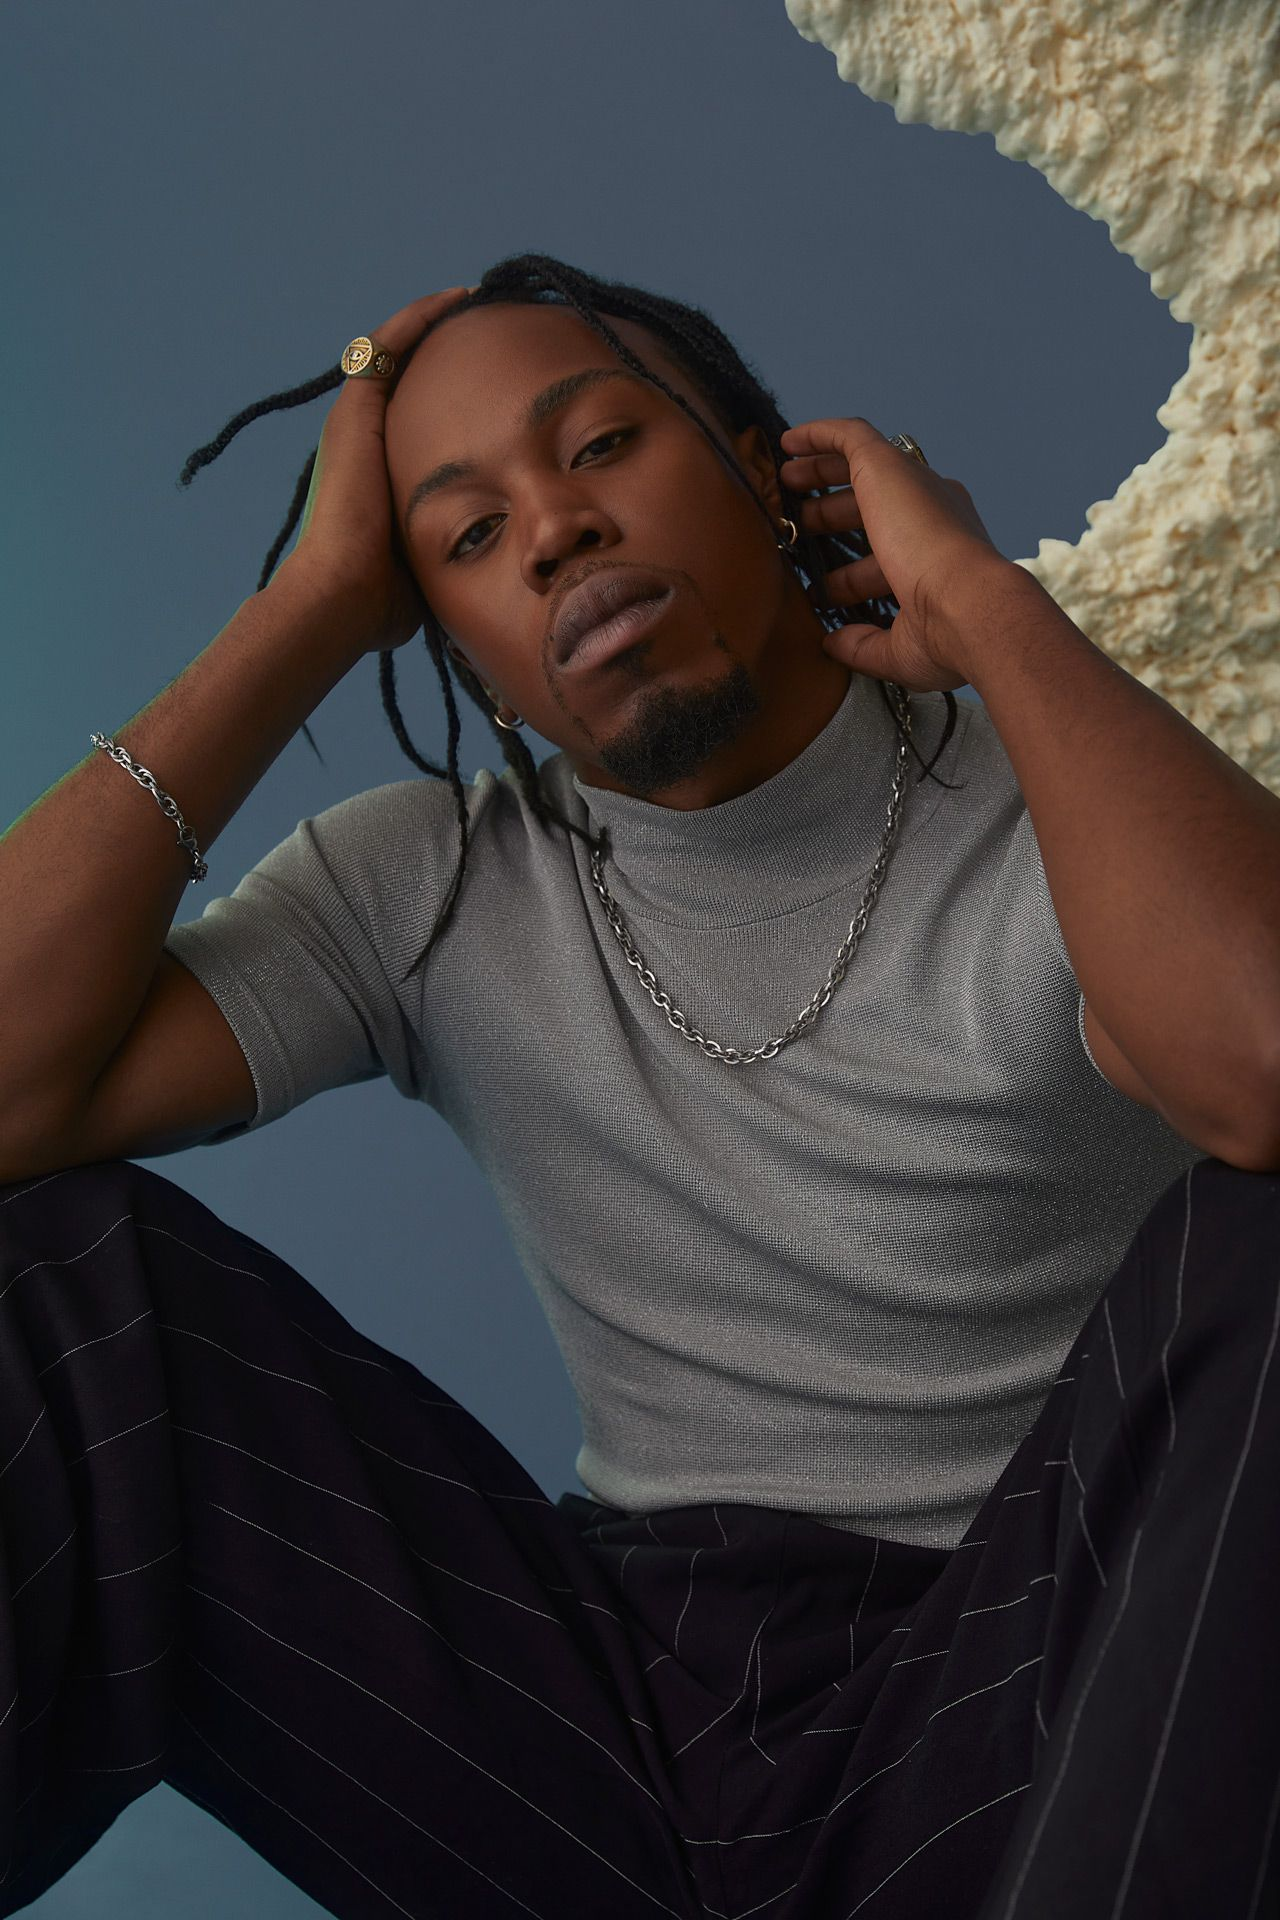 black male model sitting on the ground wearing grey shirt and striped black pants holding his head with one hand looking at camera on blue background photographed by Kelly Jacob for LEV